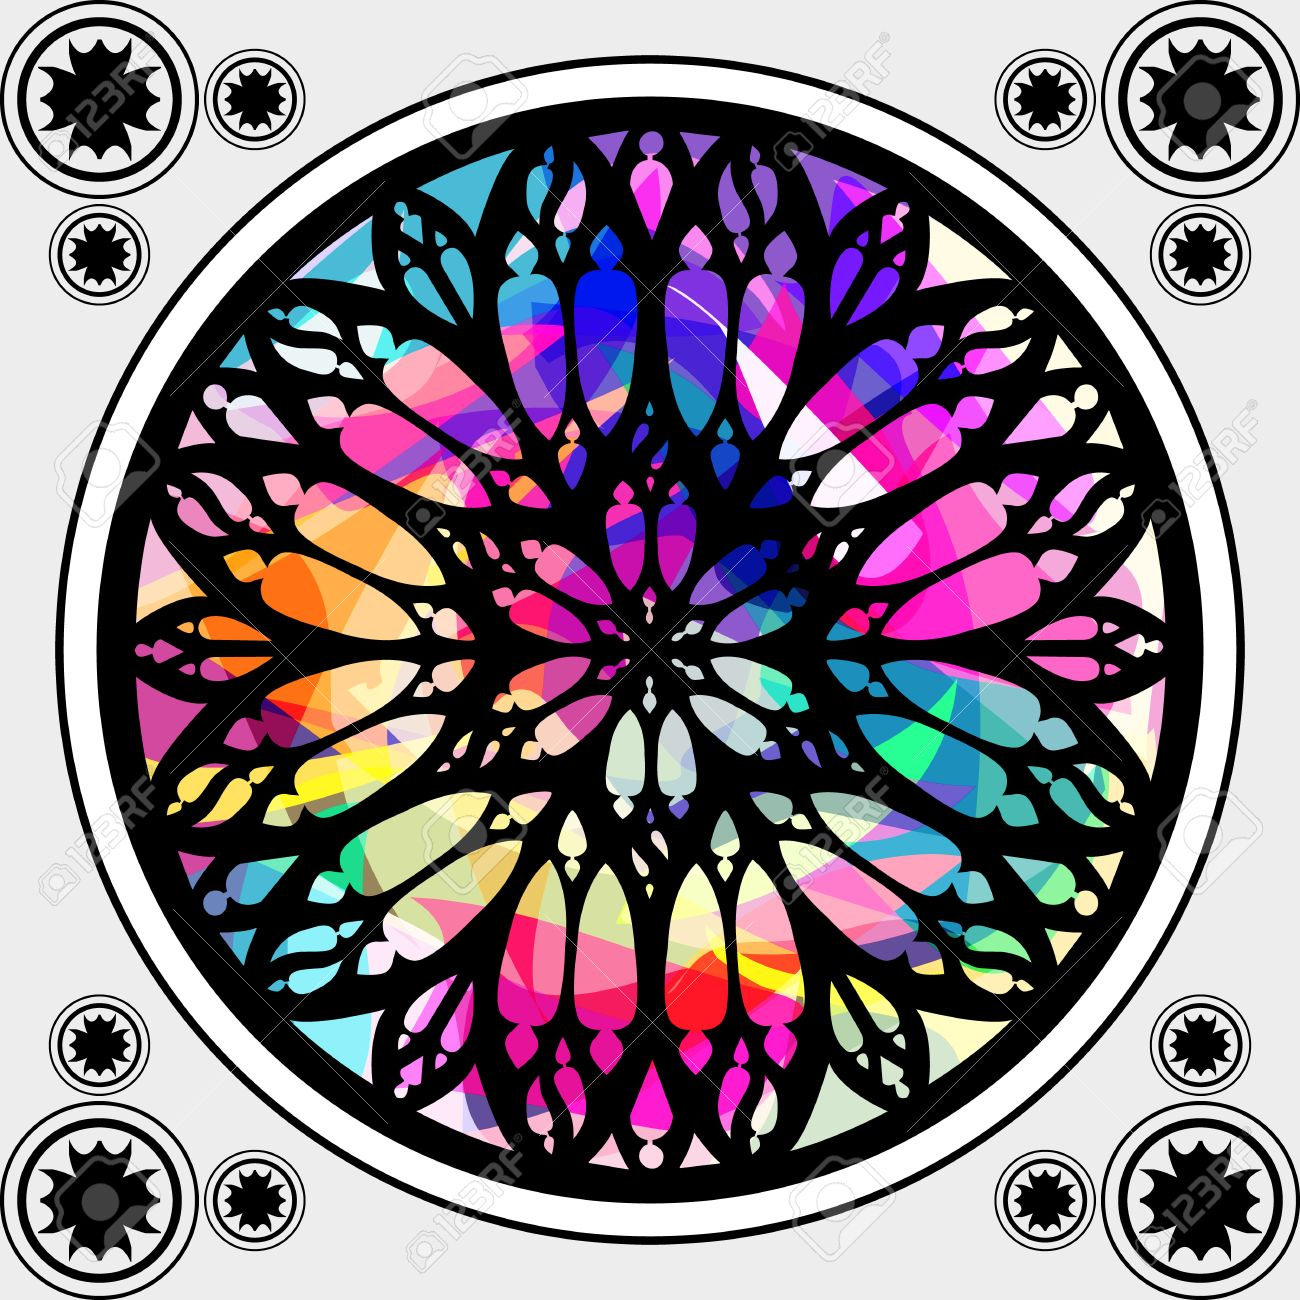 Gothic Stained Glass Window Architecture Element Stock Vector